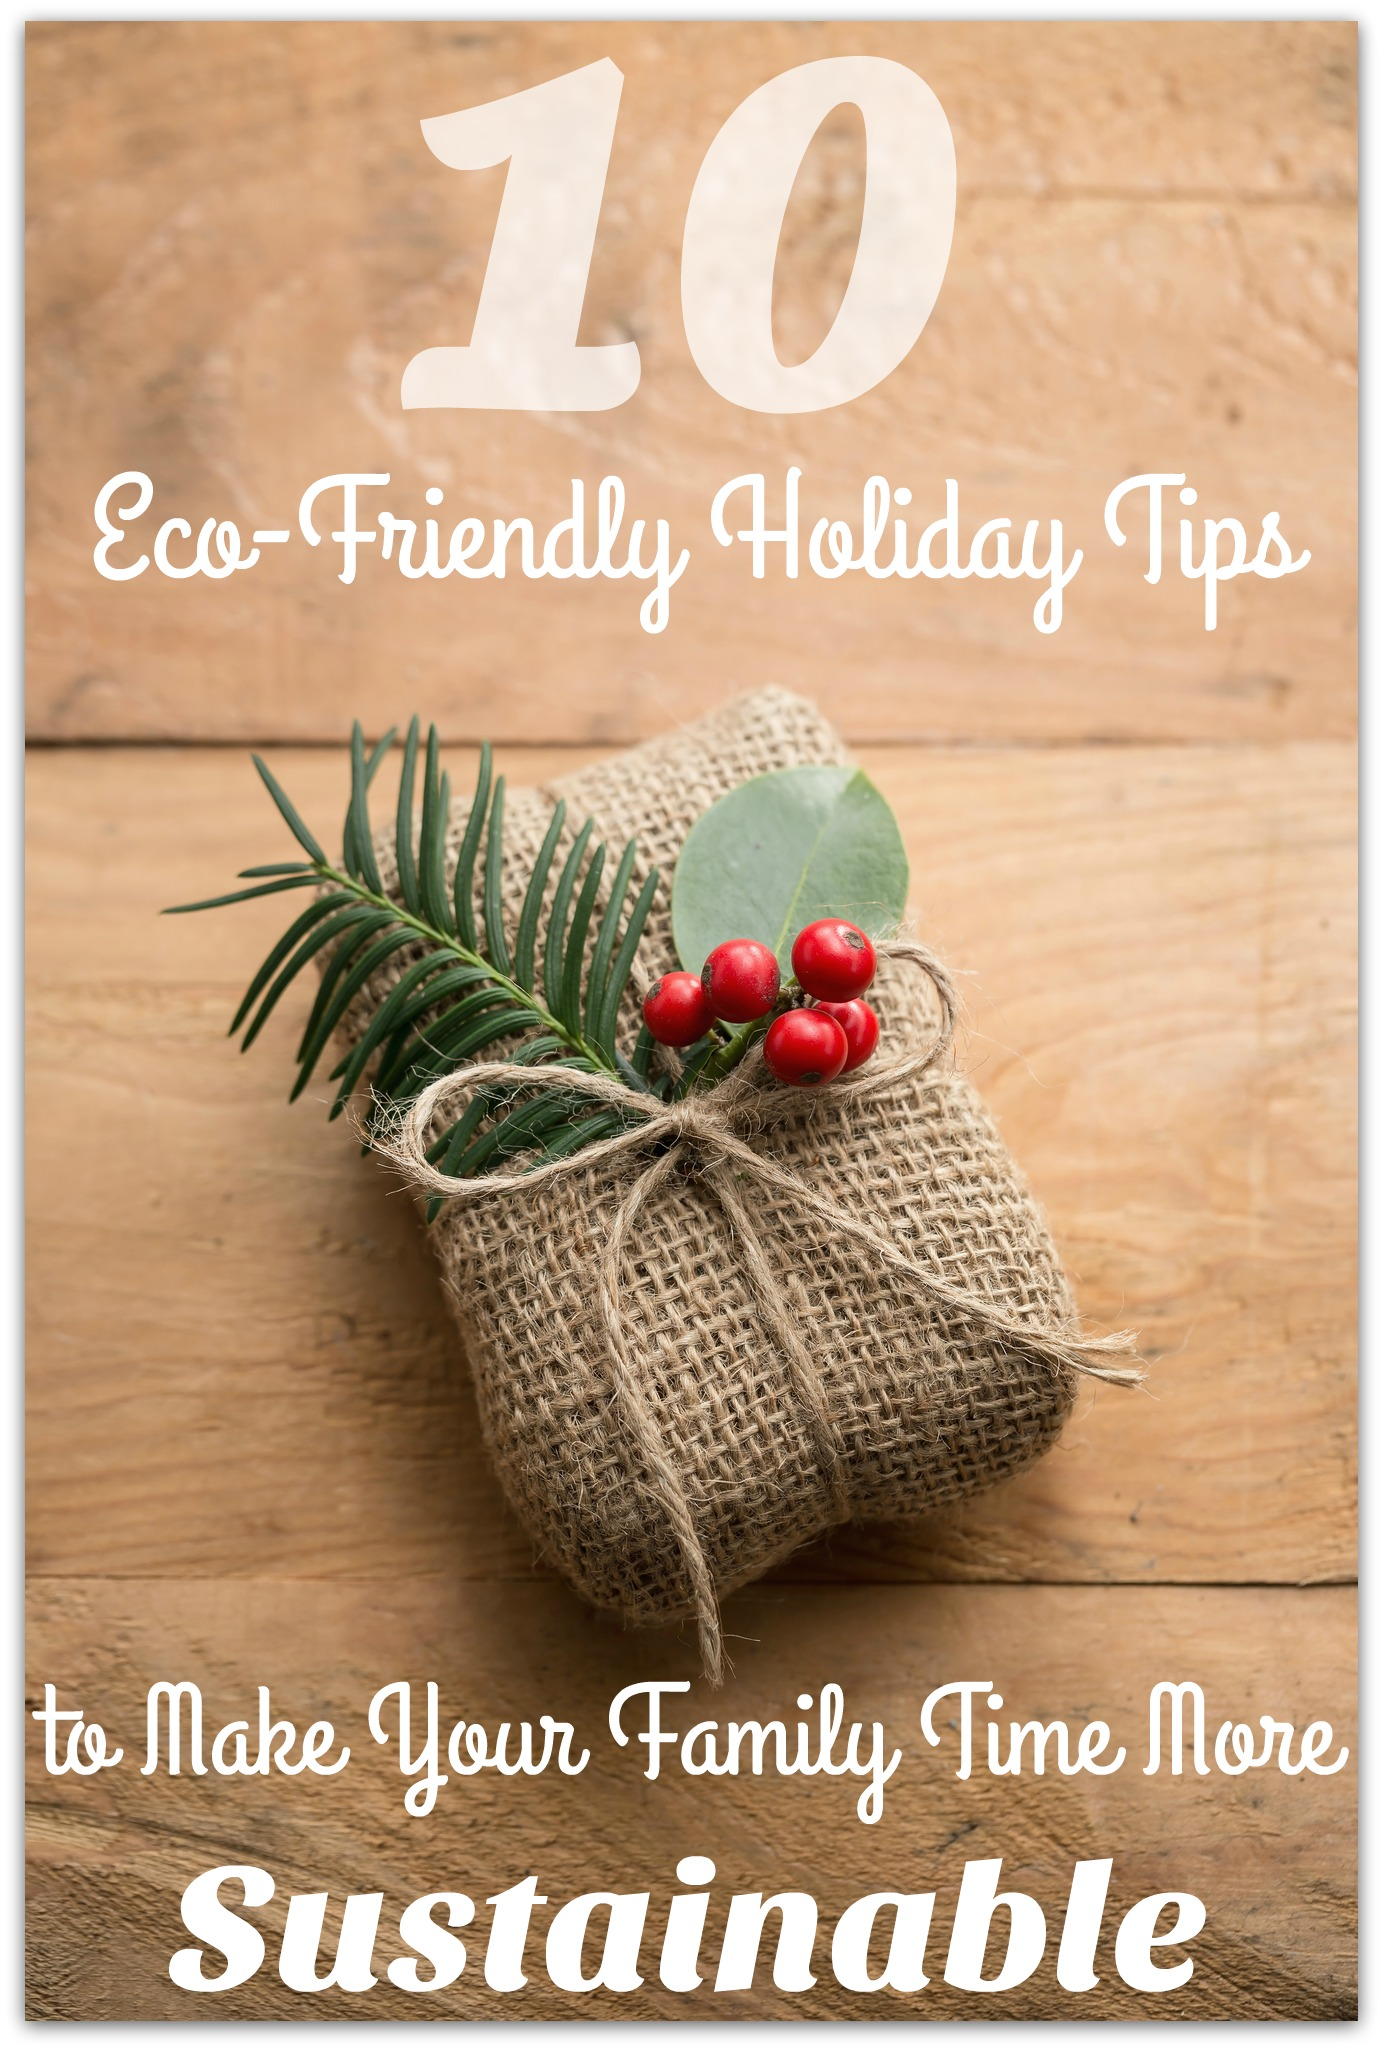 Diy eco-friendly gifts for christmas